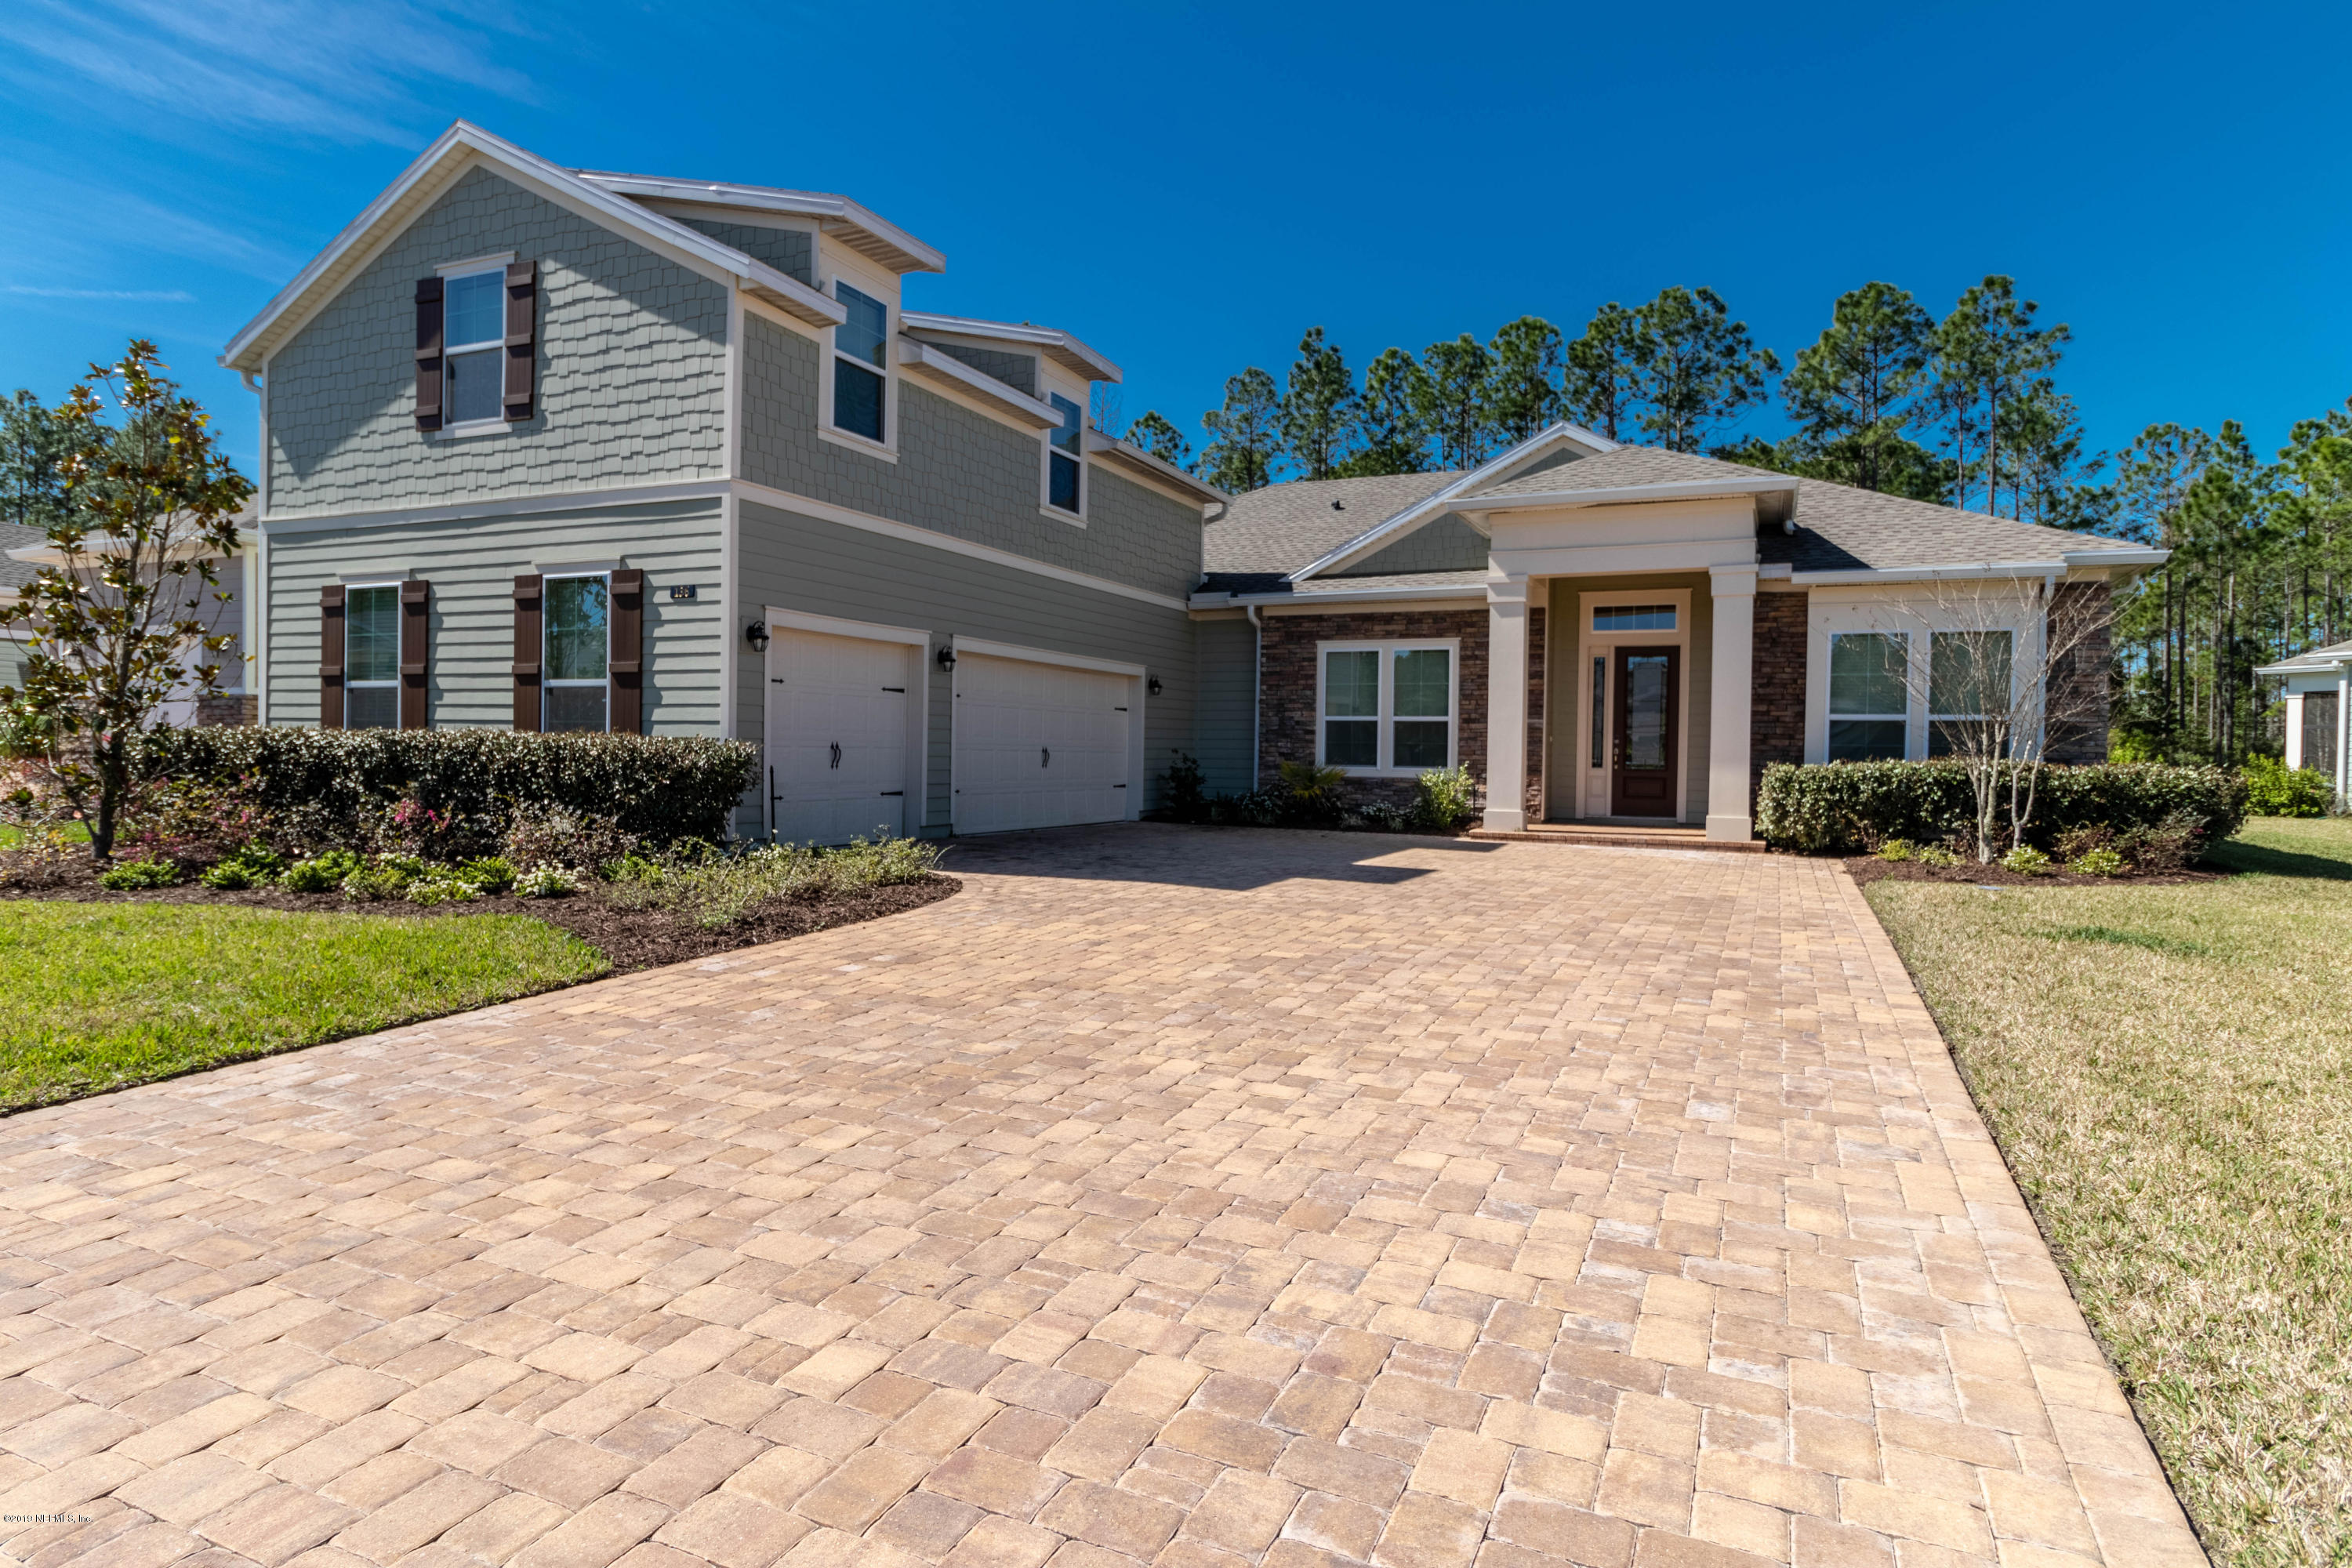 136 LAZO, ST AUGUSTINE, FLORIDA 32095, 5 Bedrooms Bedrooms, ,5 BathroomsBathrooms,Residential - single family,For sale,LAZO,981733